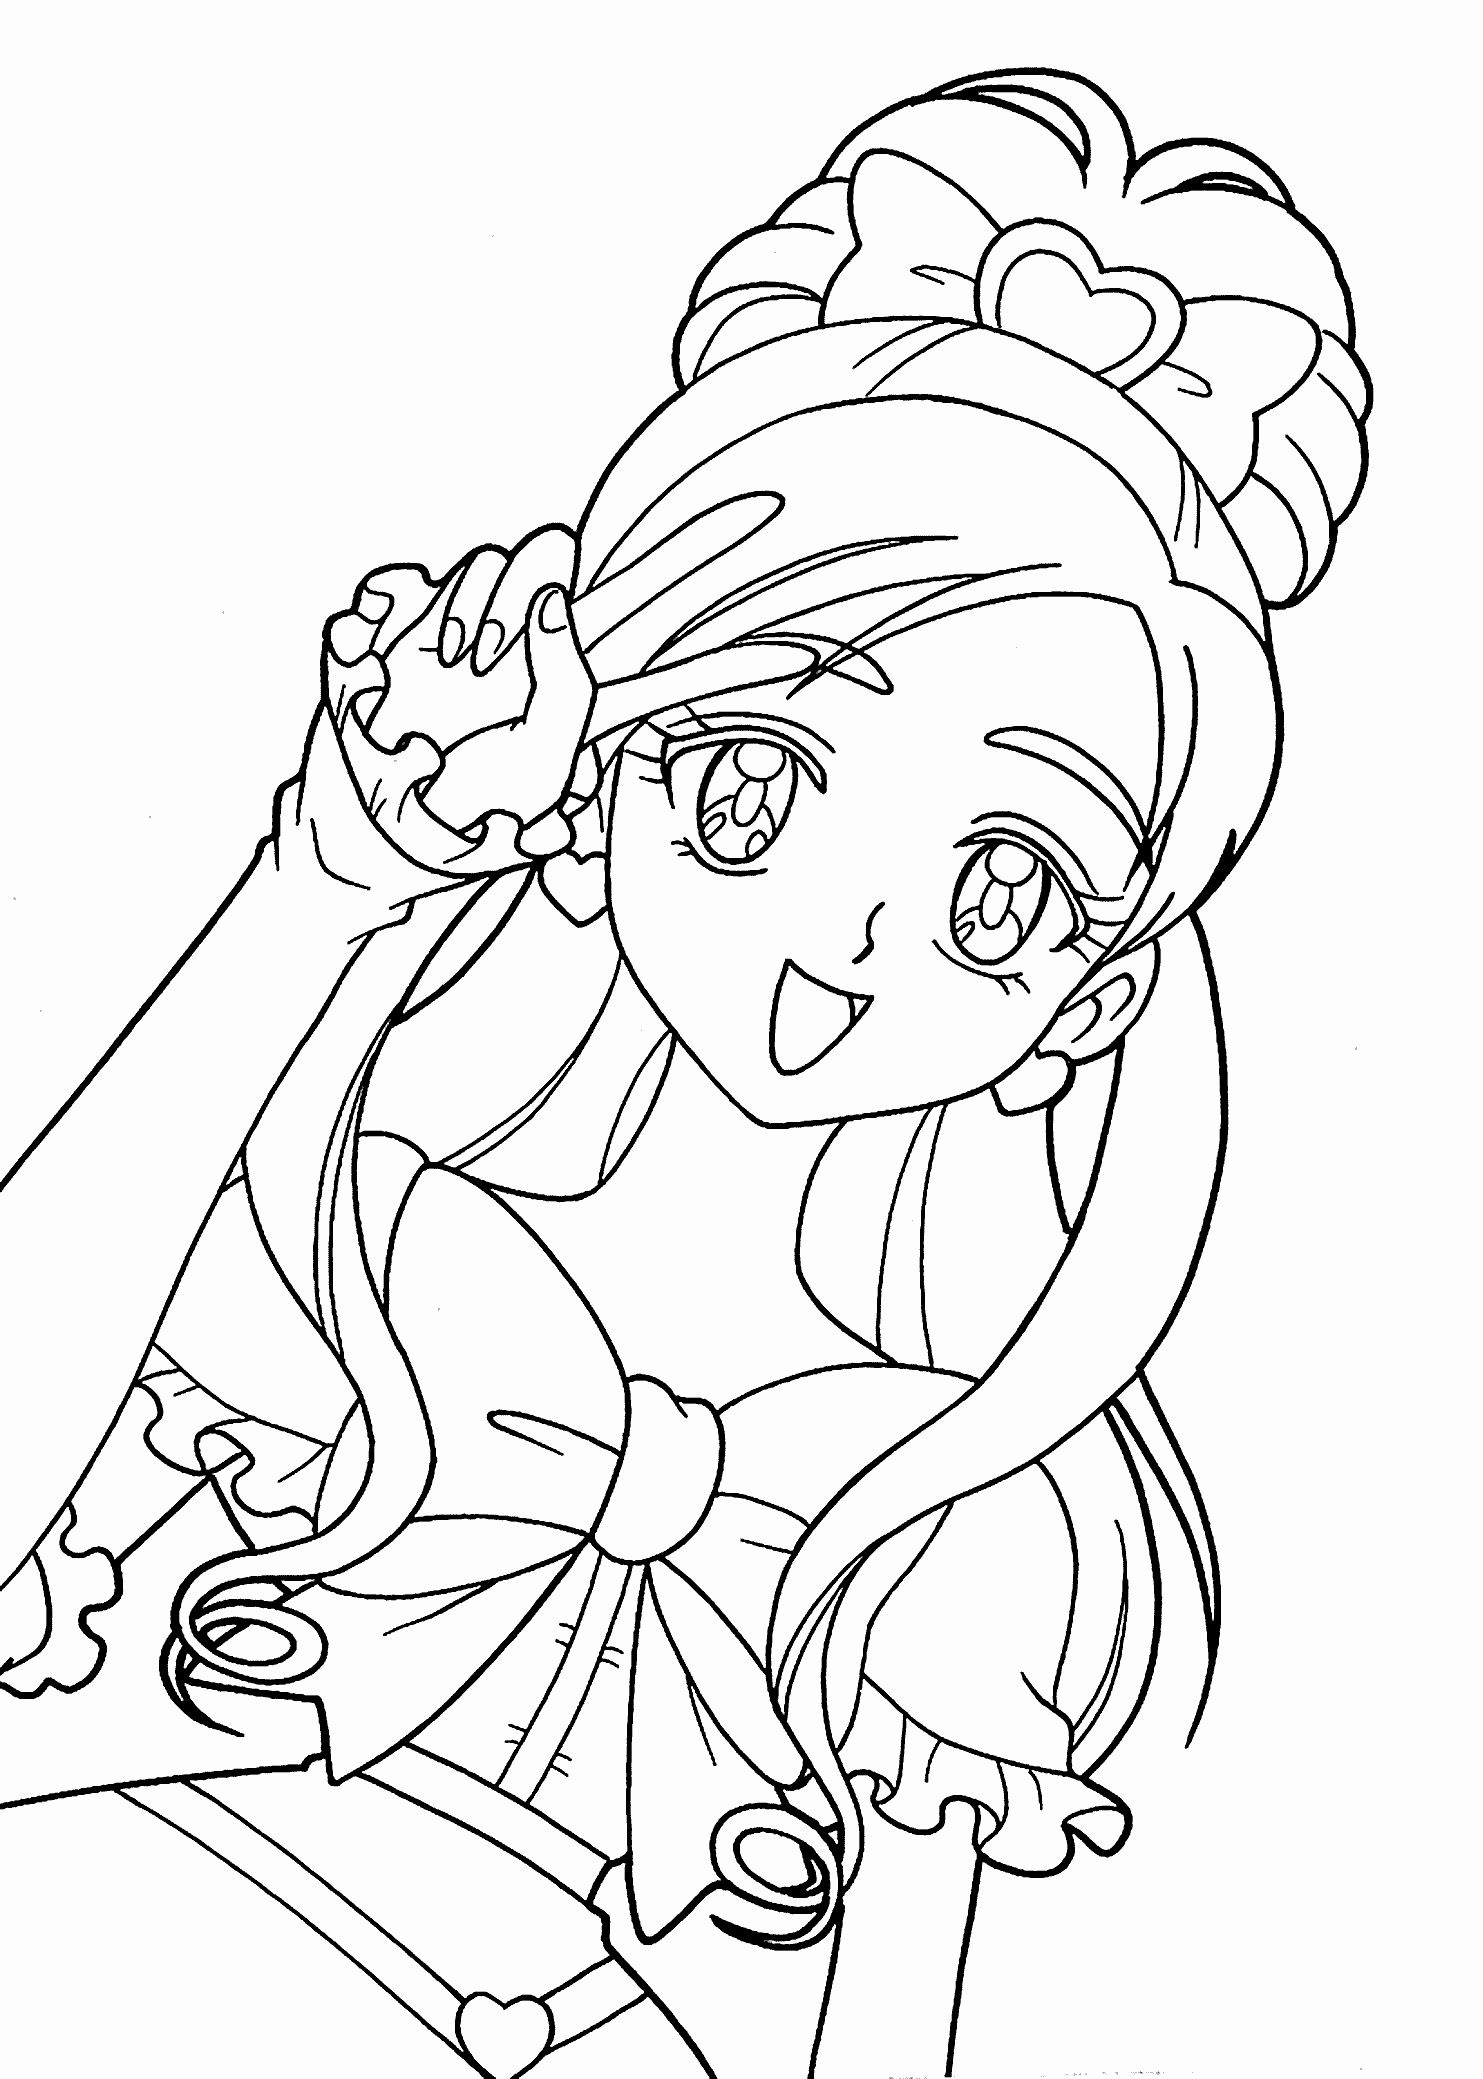 - Cartoon Characters Coloring Book In 2020 Cartoon Coloring Pages